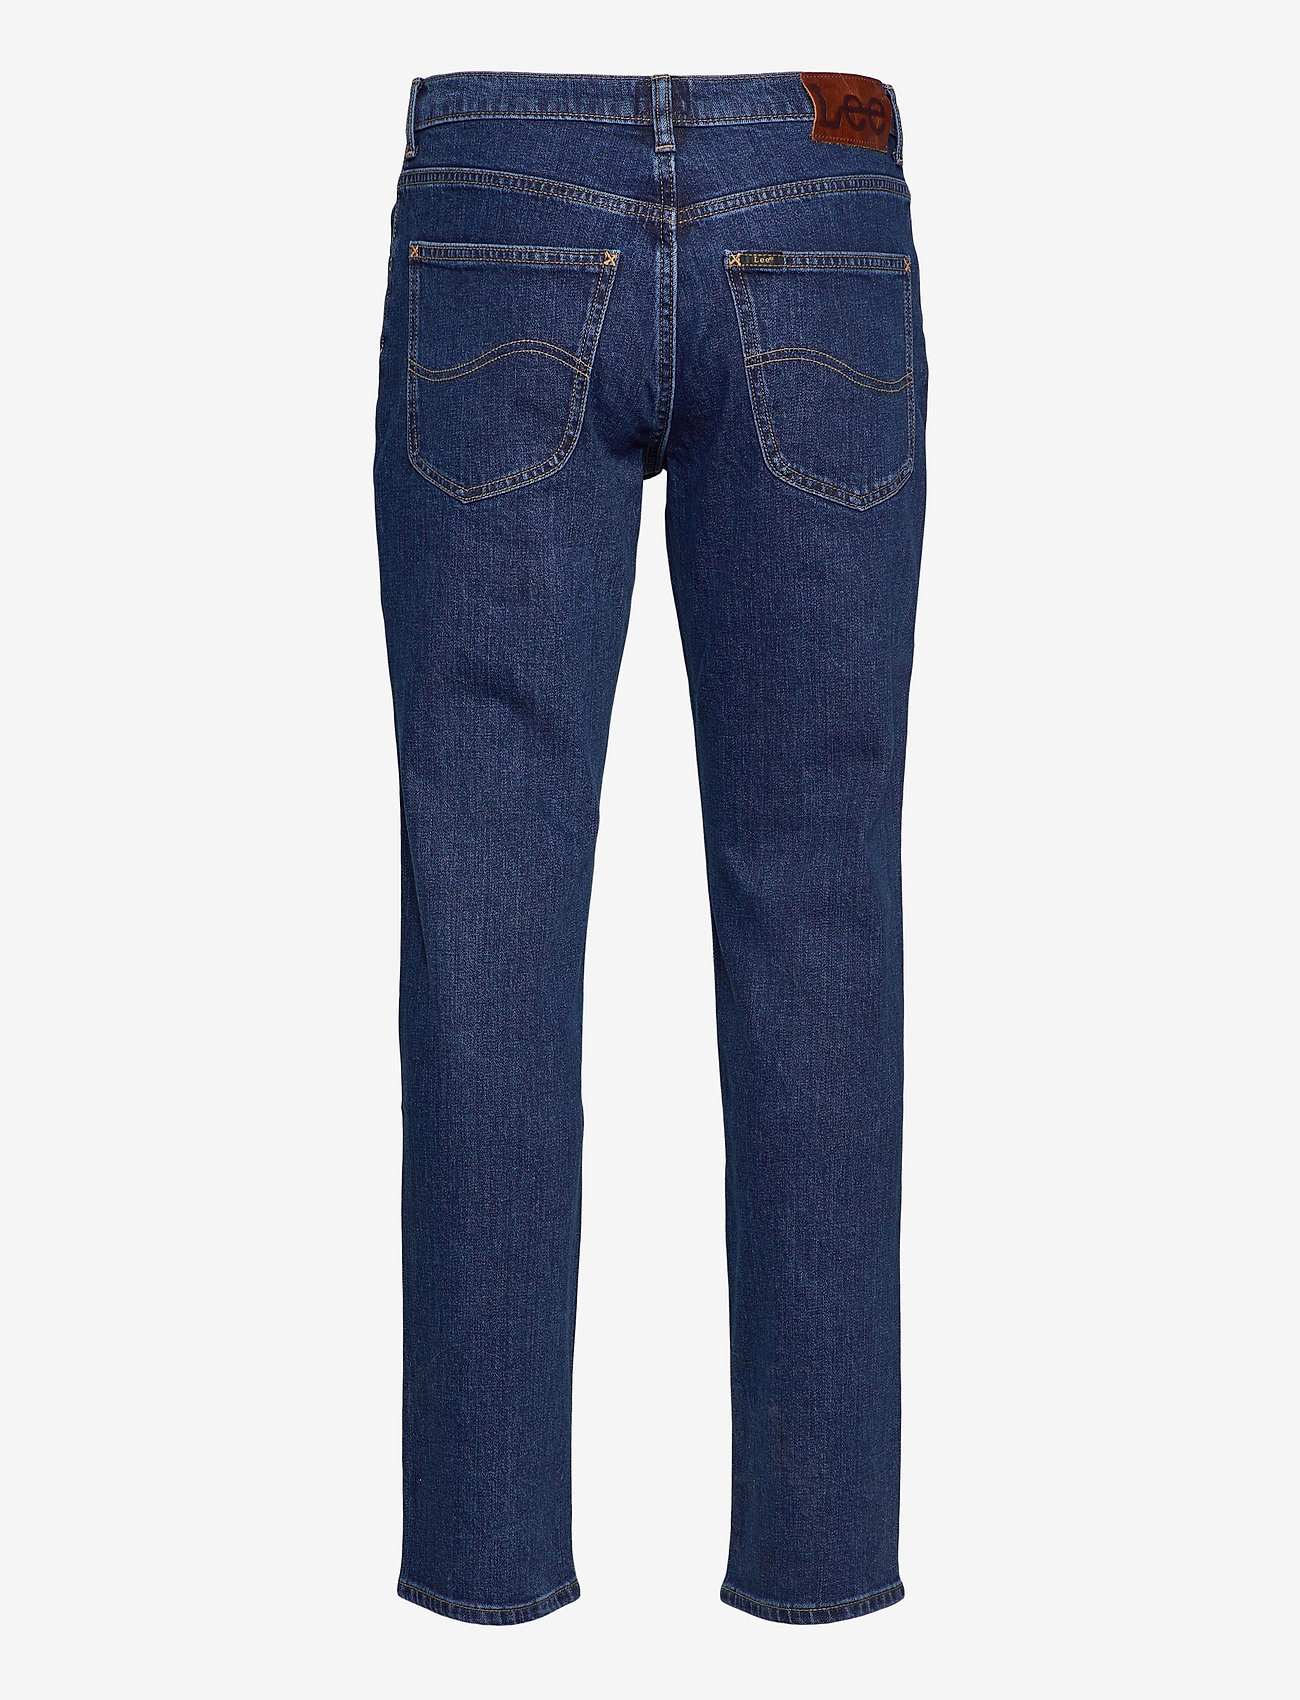 Lee Jeans - BROOKLYN STRAIGHT - relaxed jeans - dark stone - 1